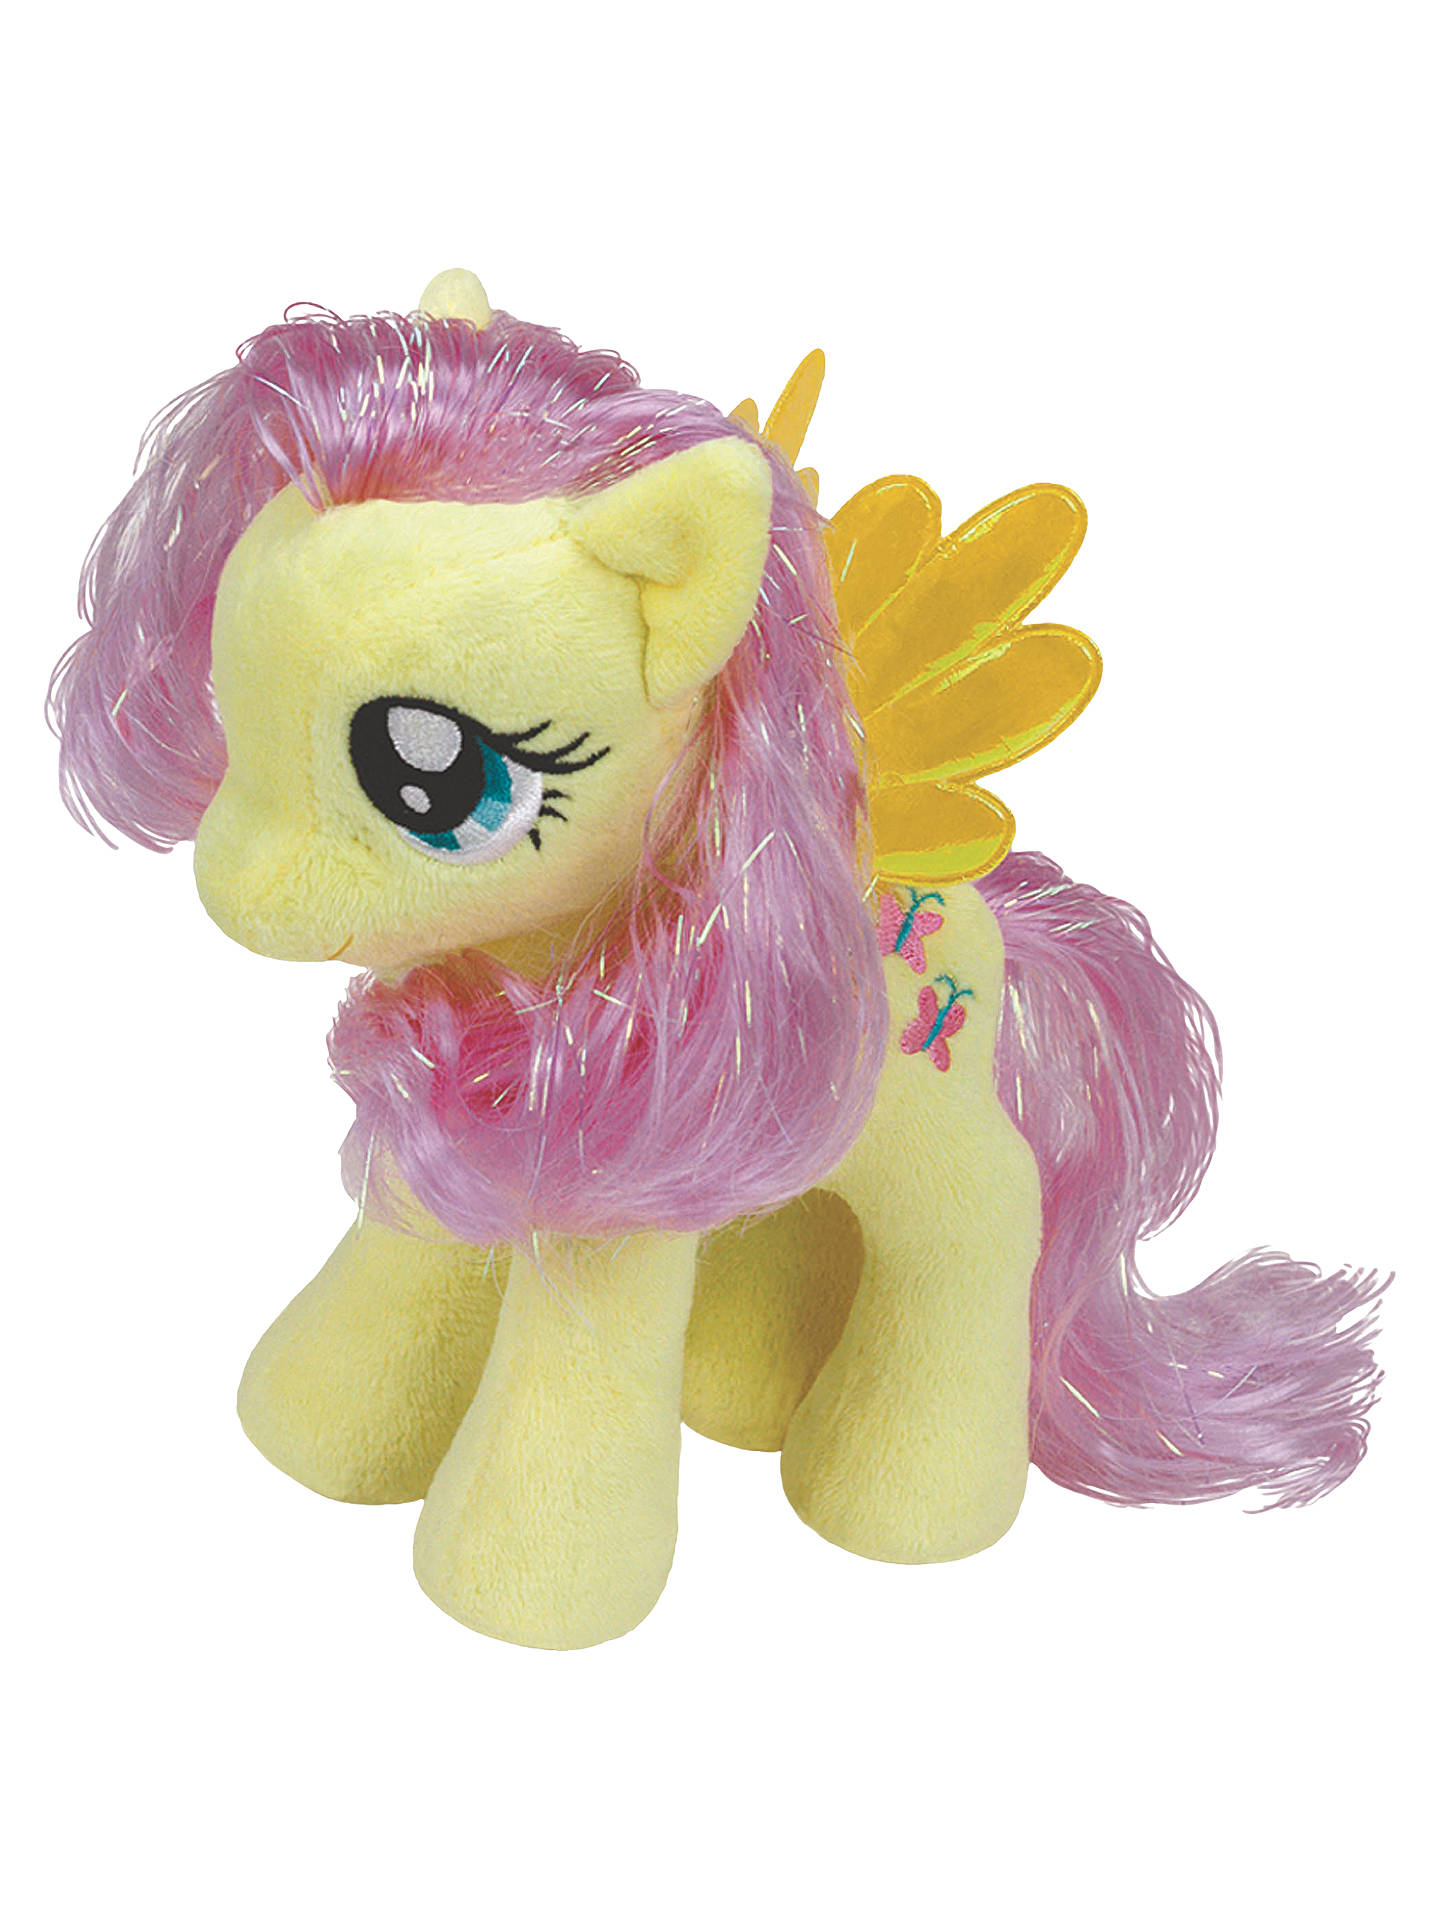 BuyTy My Little Pony Fluttershy Beanie Baby c814e5f8d24b